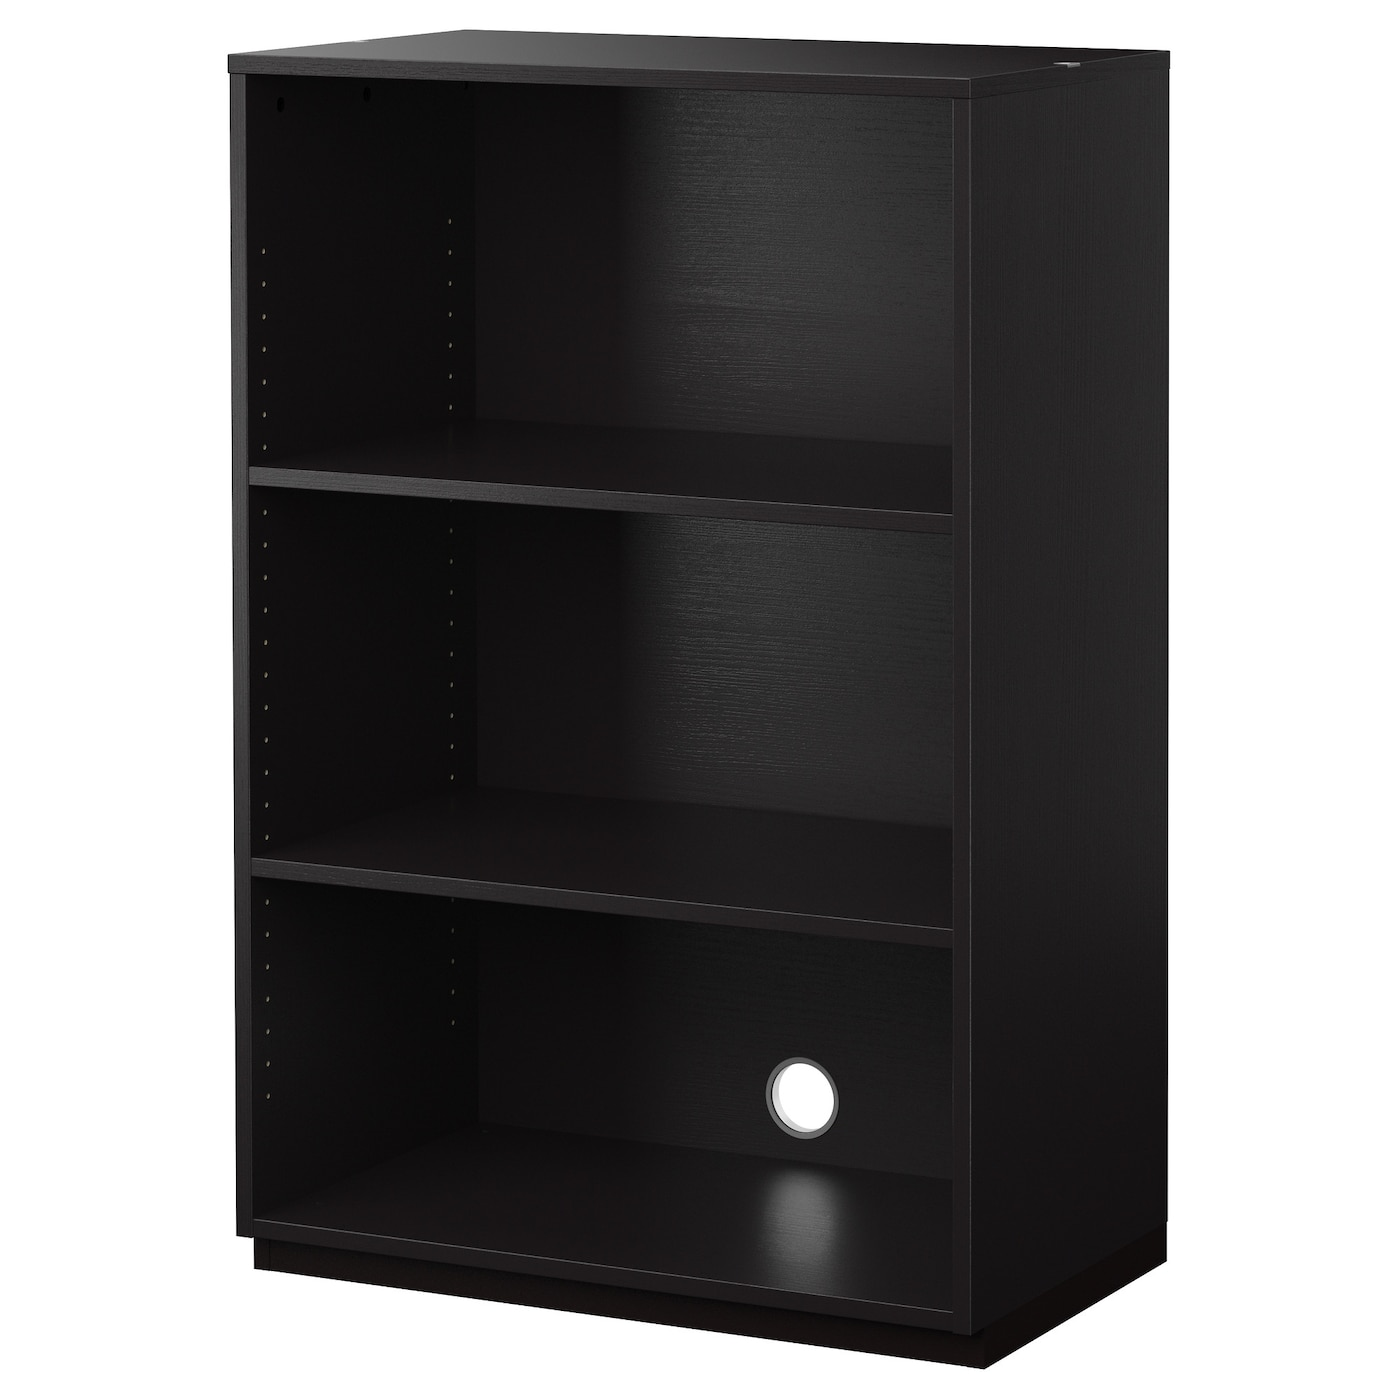 IKEA GALANT shelf unit 10 year guarantee. Read about the terms in the guarantee brochure.